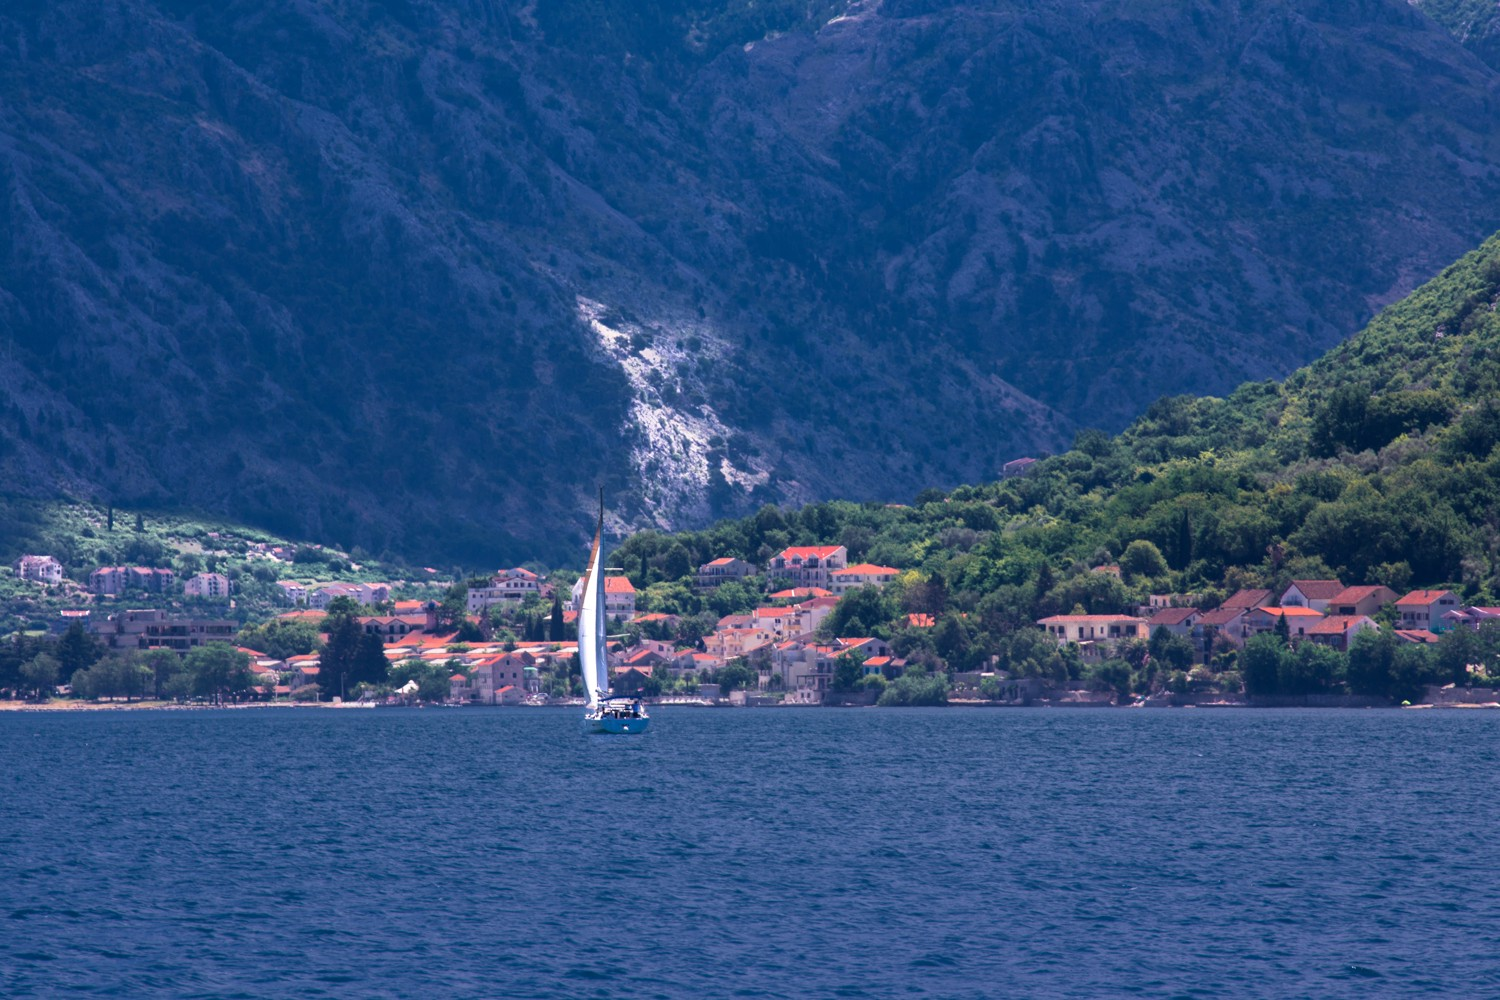 Sailboat in the Bay of Kotor near the town of Perast